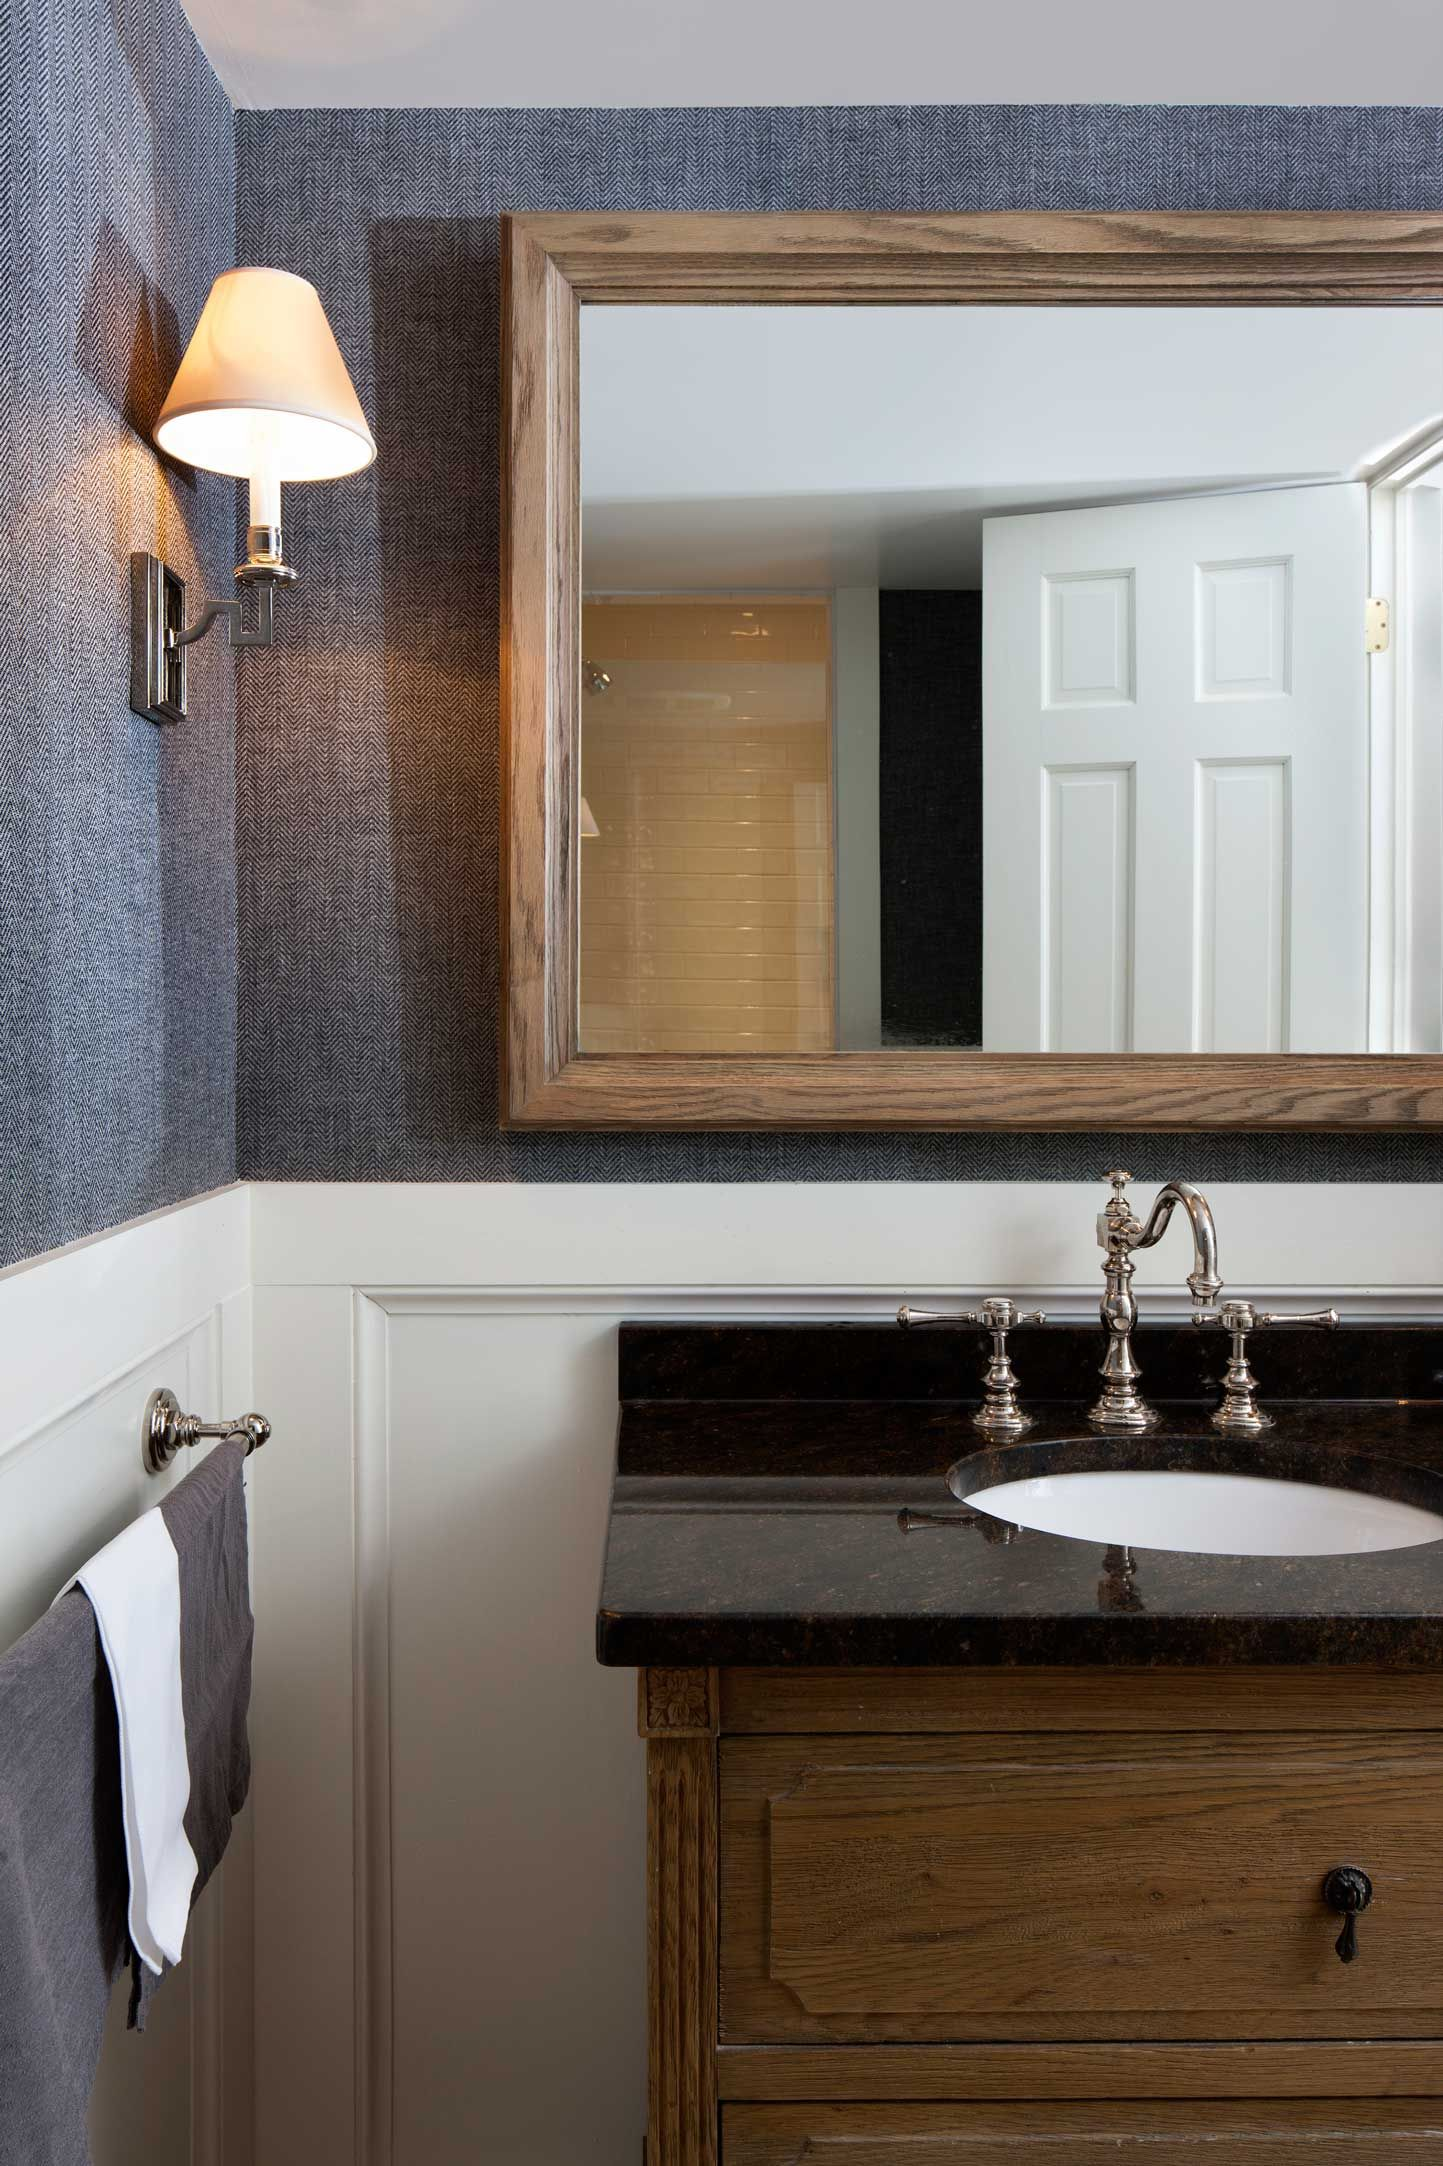 Rustic bathroom design with wooden vanity and